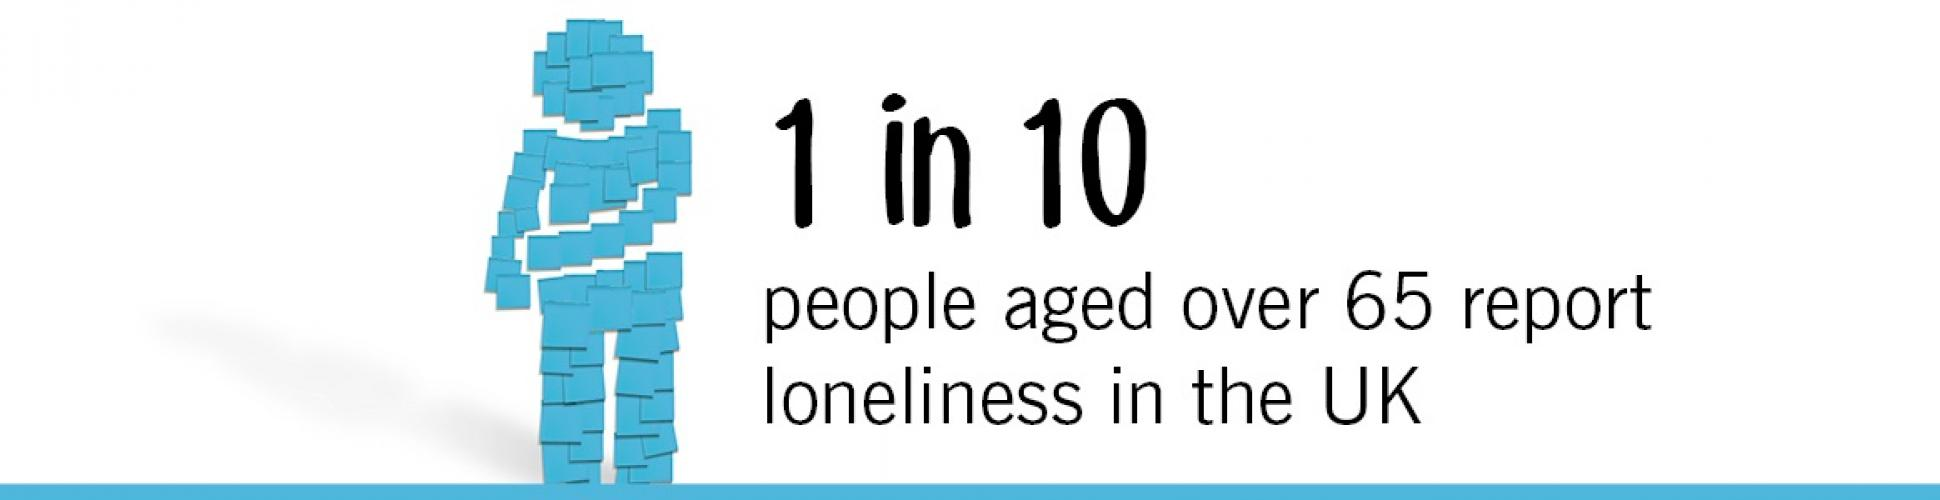 Leicestershire County Council fights loneliness